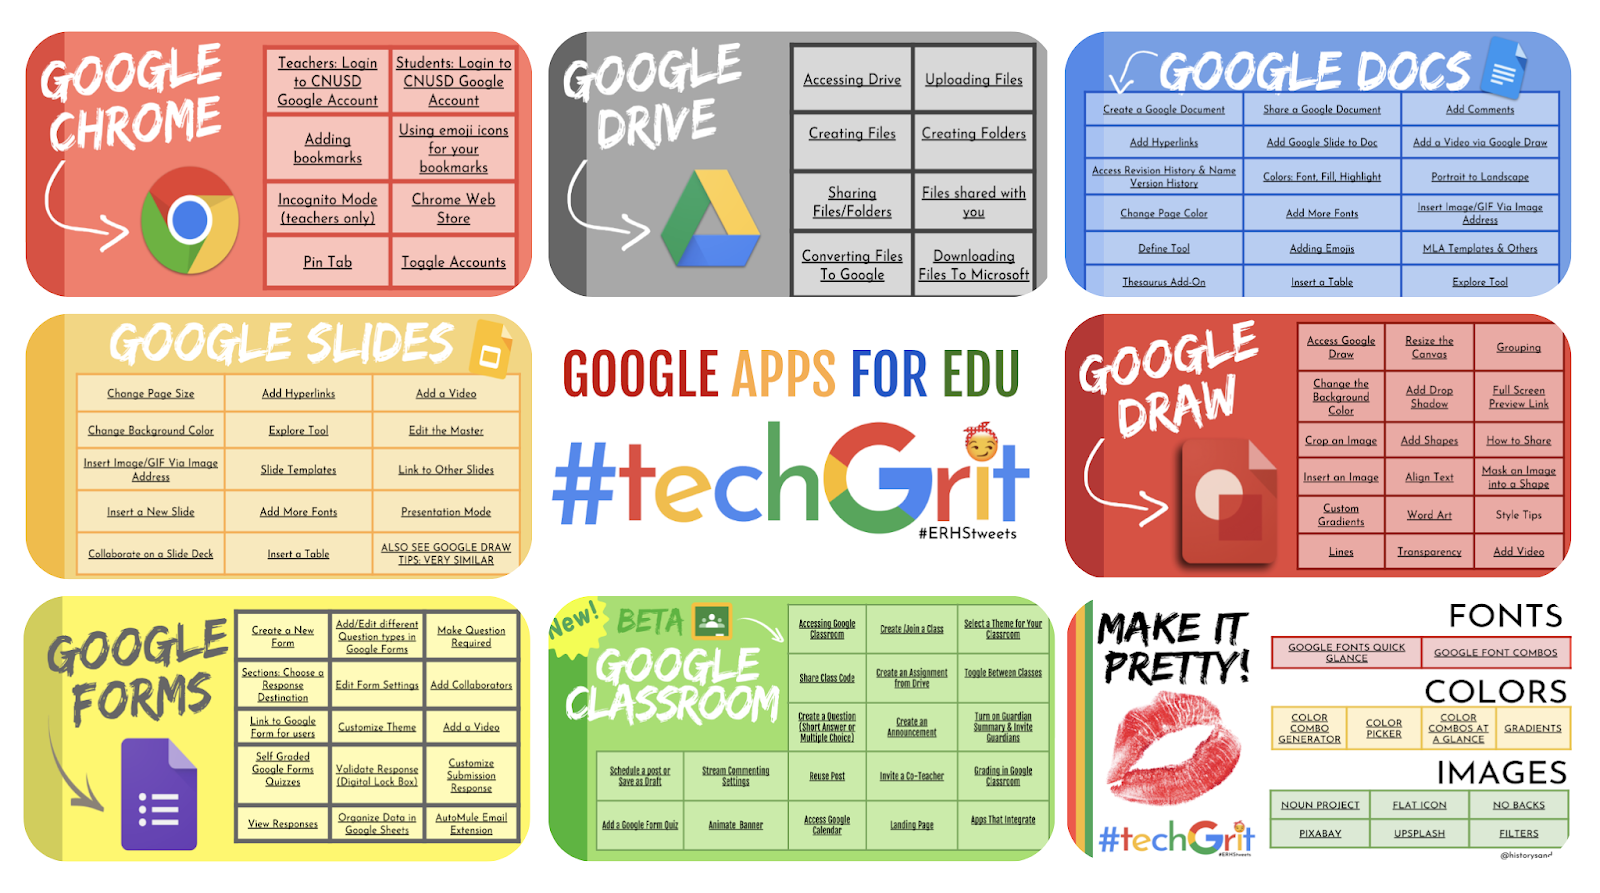 Tips and tutorials for Google Apps for Education/Google Drive